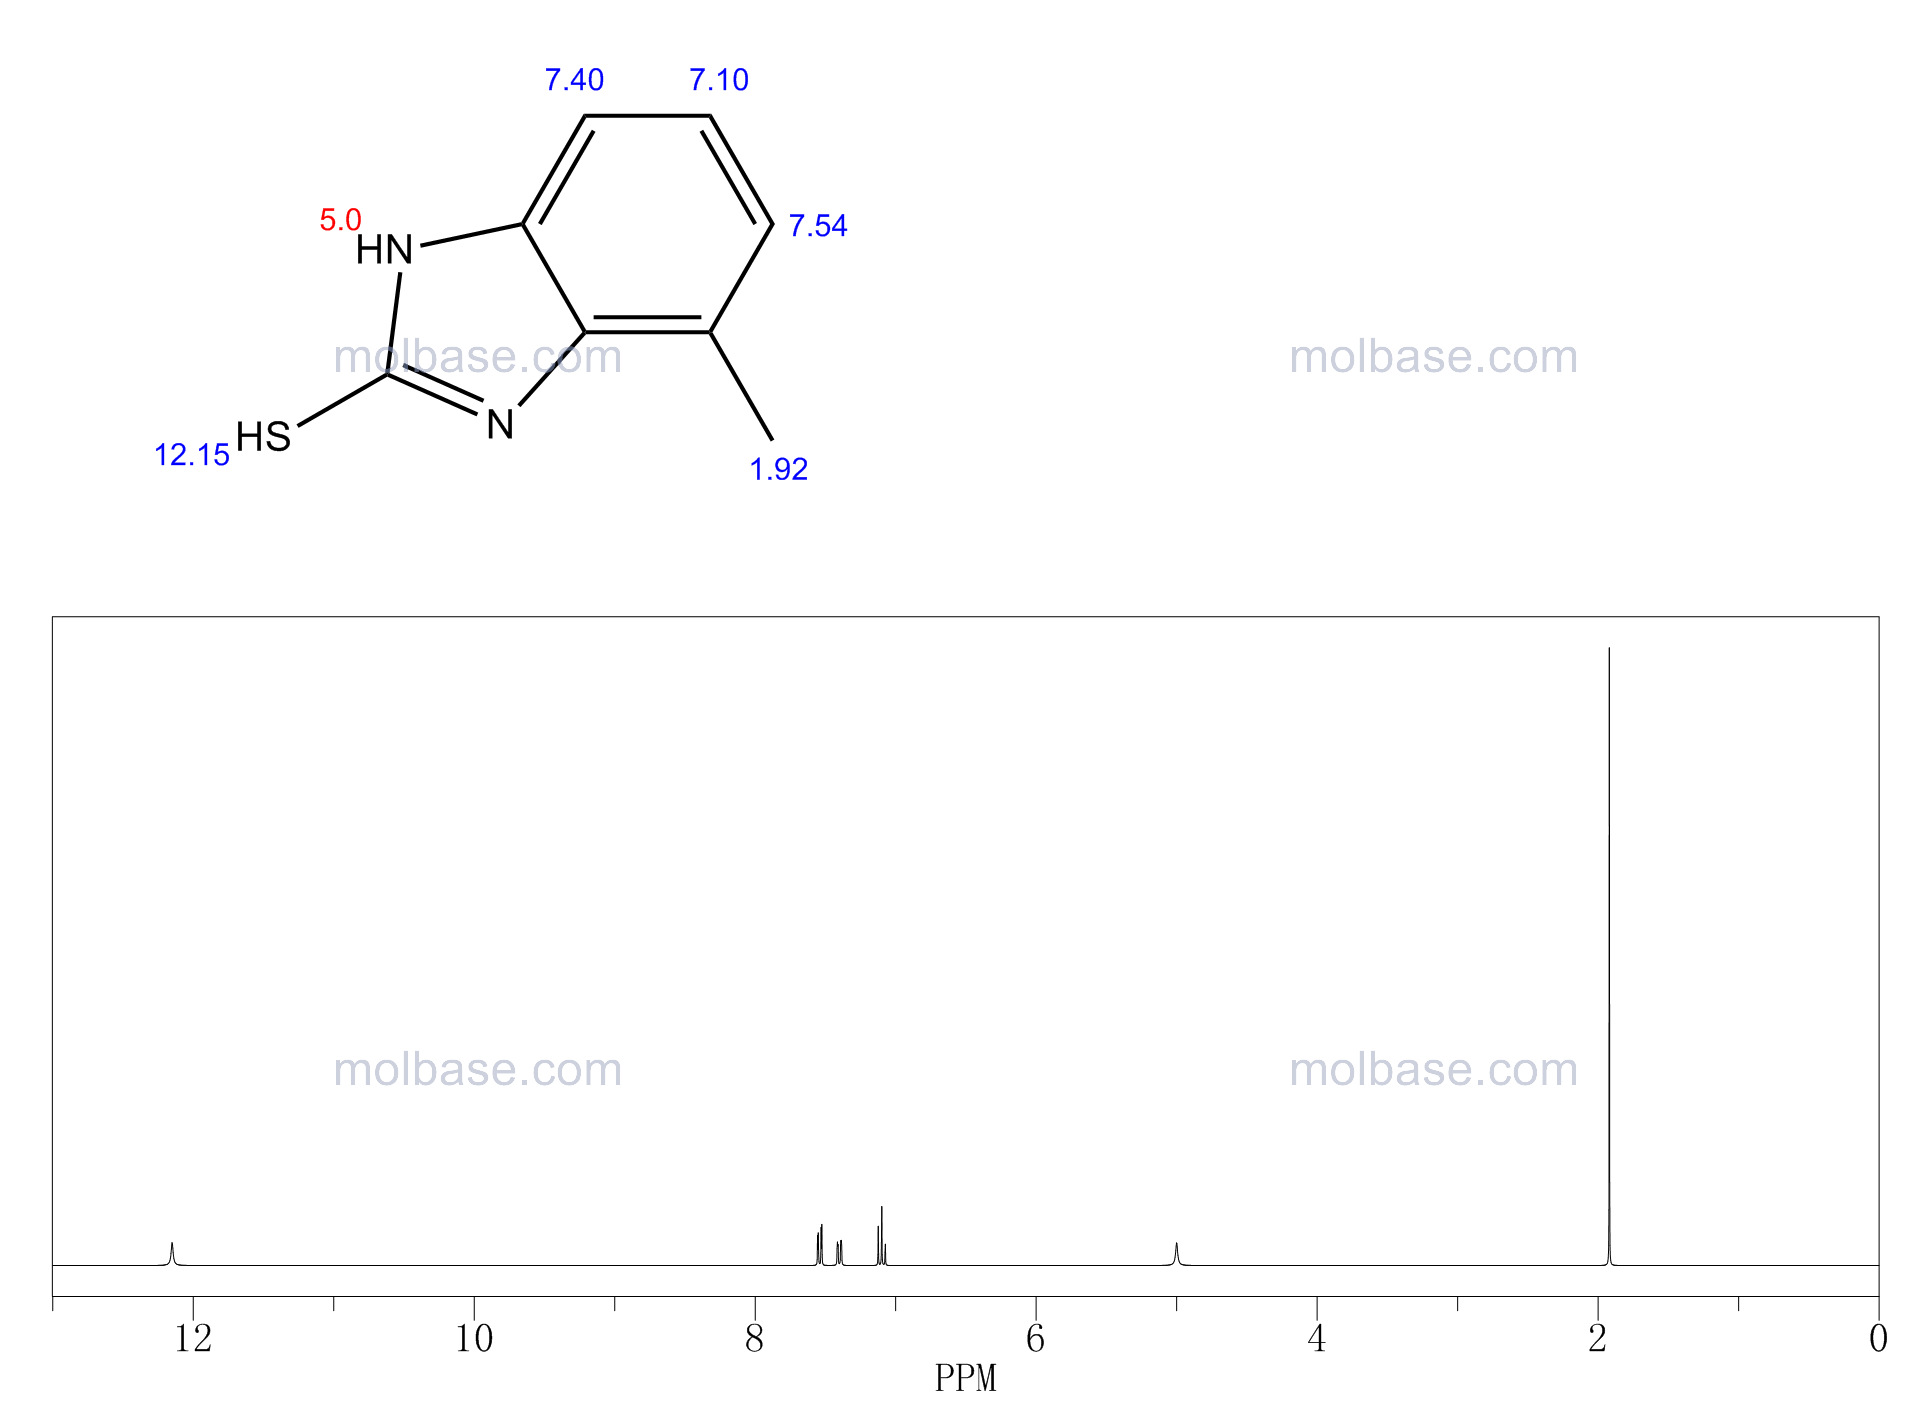 2H-benzimidazole-2-thione, 1,3-di-hydro-4(or 5)-methyl NMR spectra analysis, Chemical CAS NO. 53988-10-6 NMR spectral analysis, 2H-benzimidazole-2-thione, 1,3-di-hydro-4(or 5)-methyl C-NMR spectrum